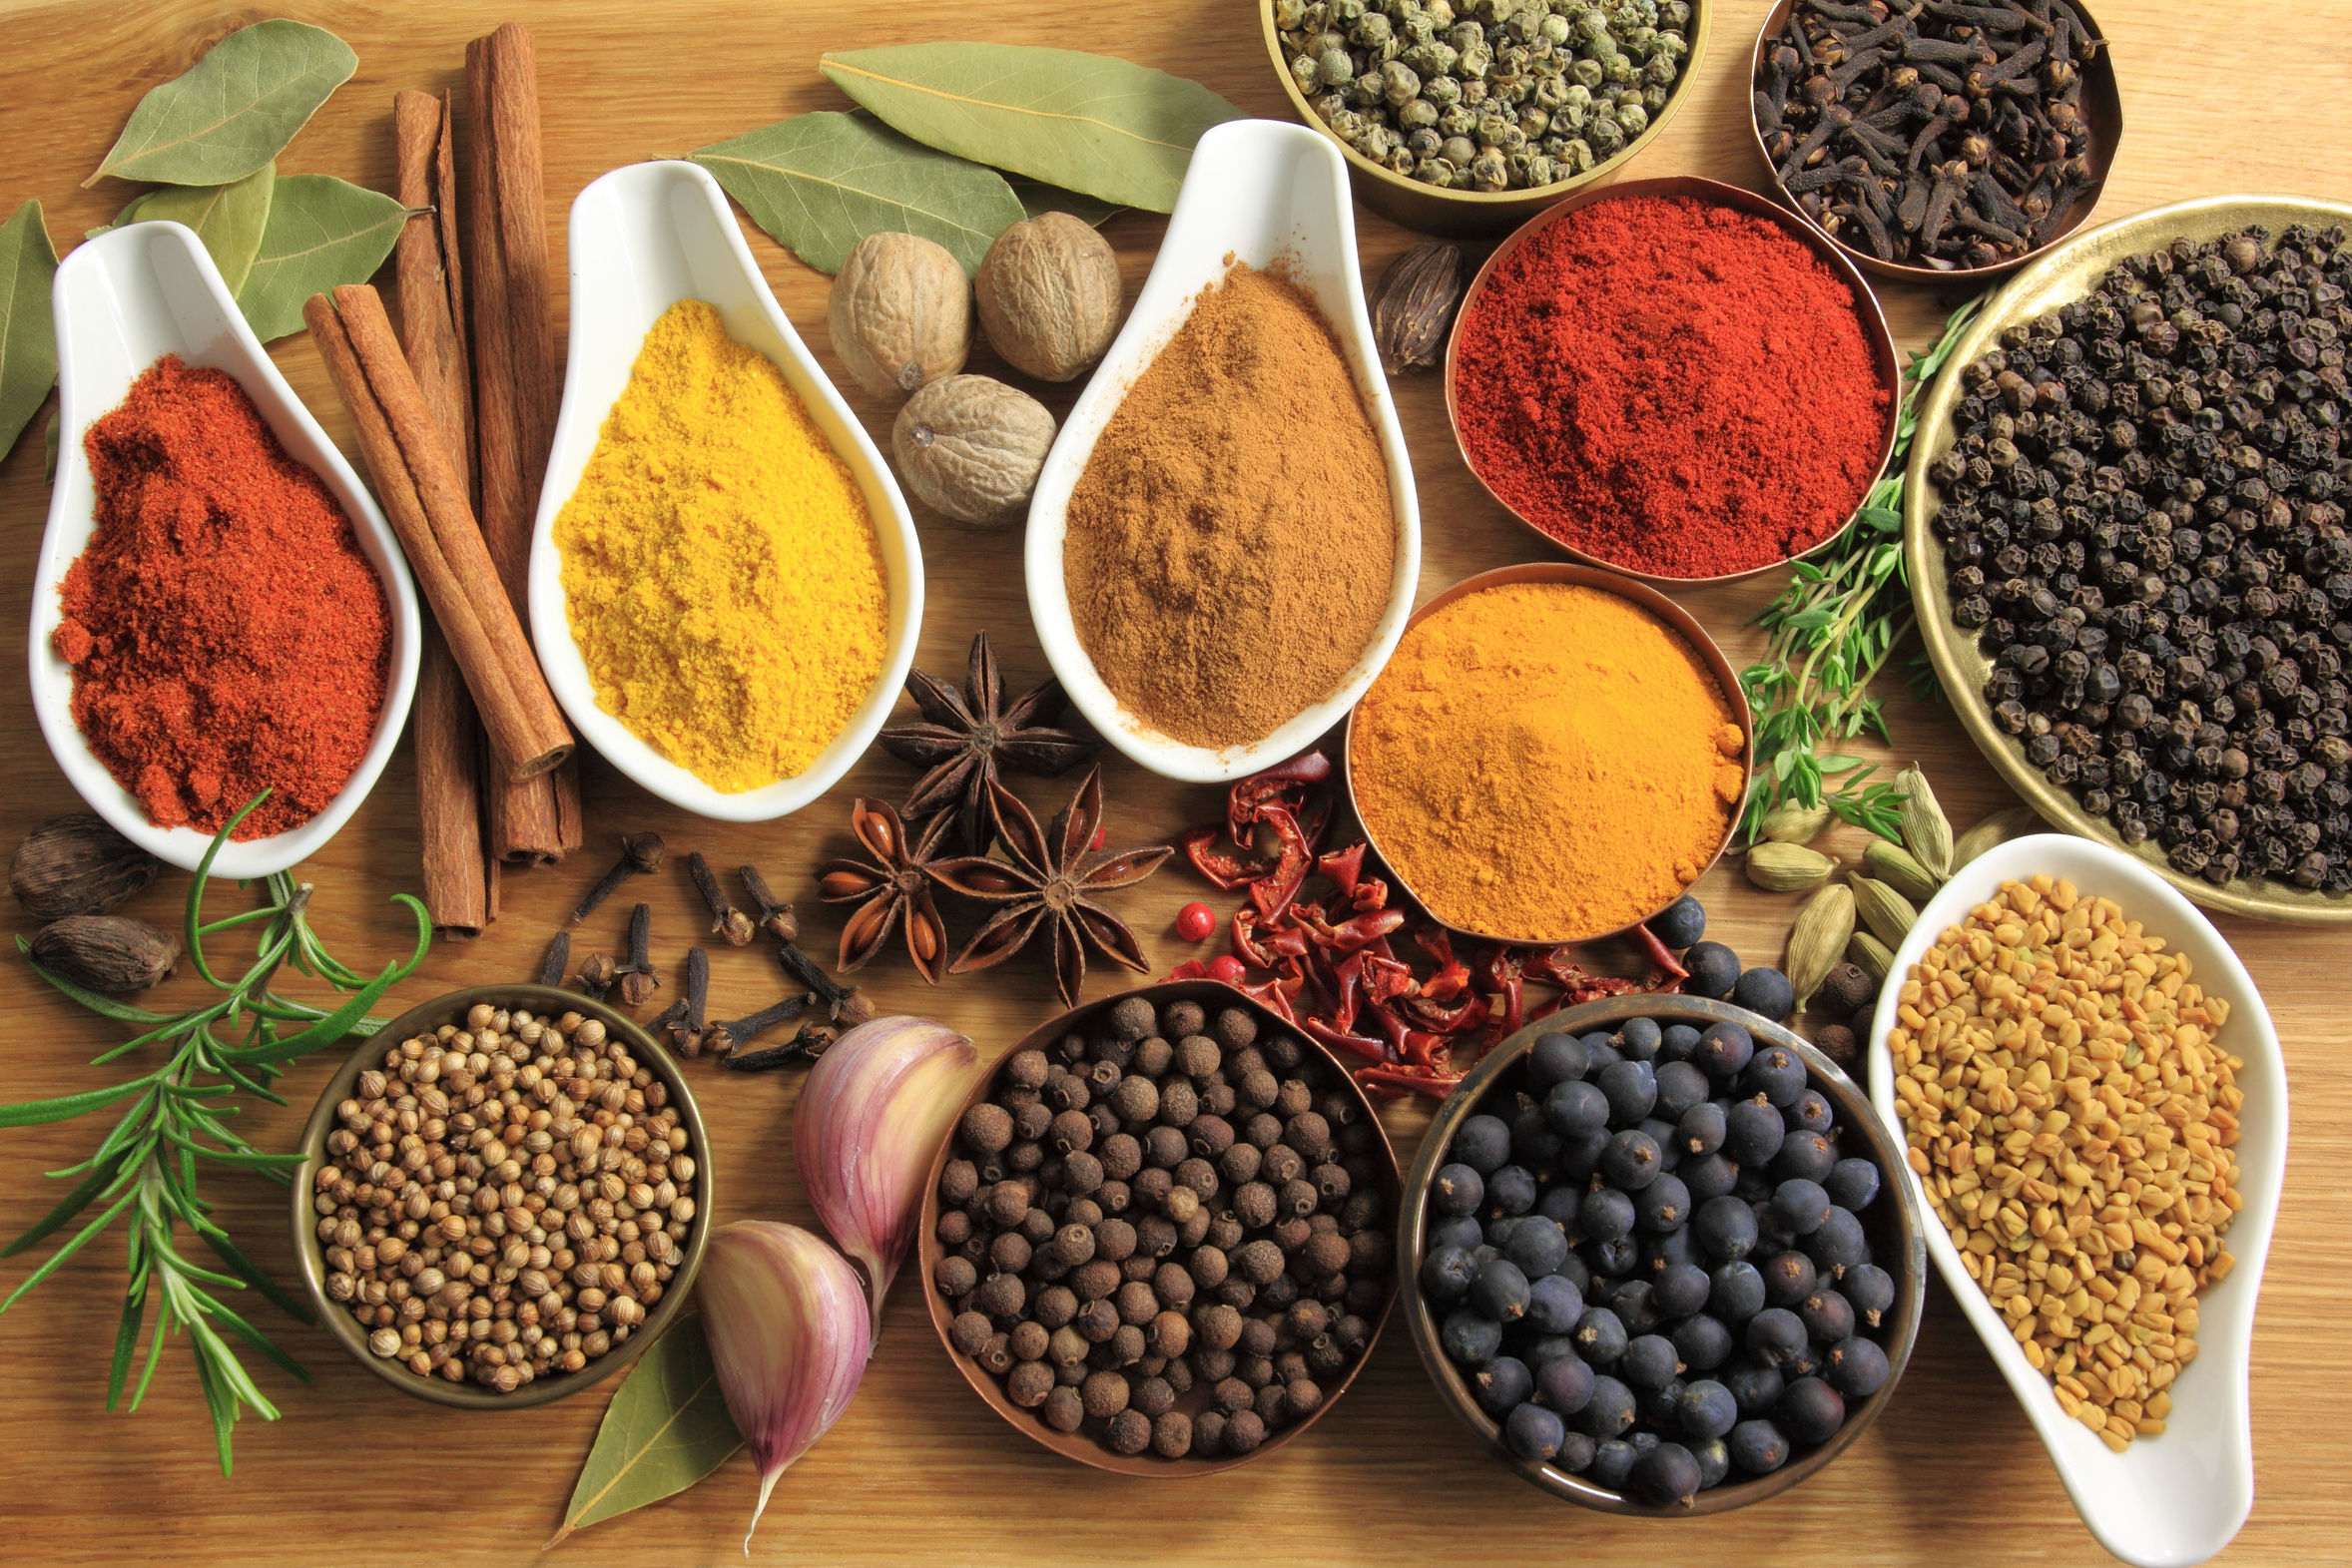 Food ingredients - herbs and spices. Culinary background.